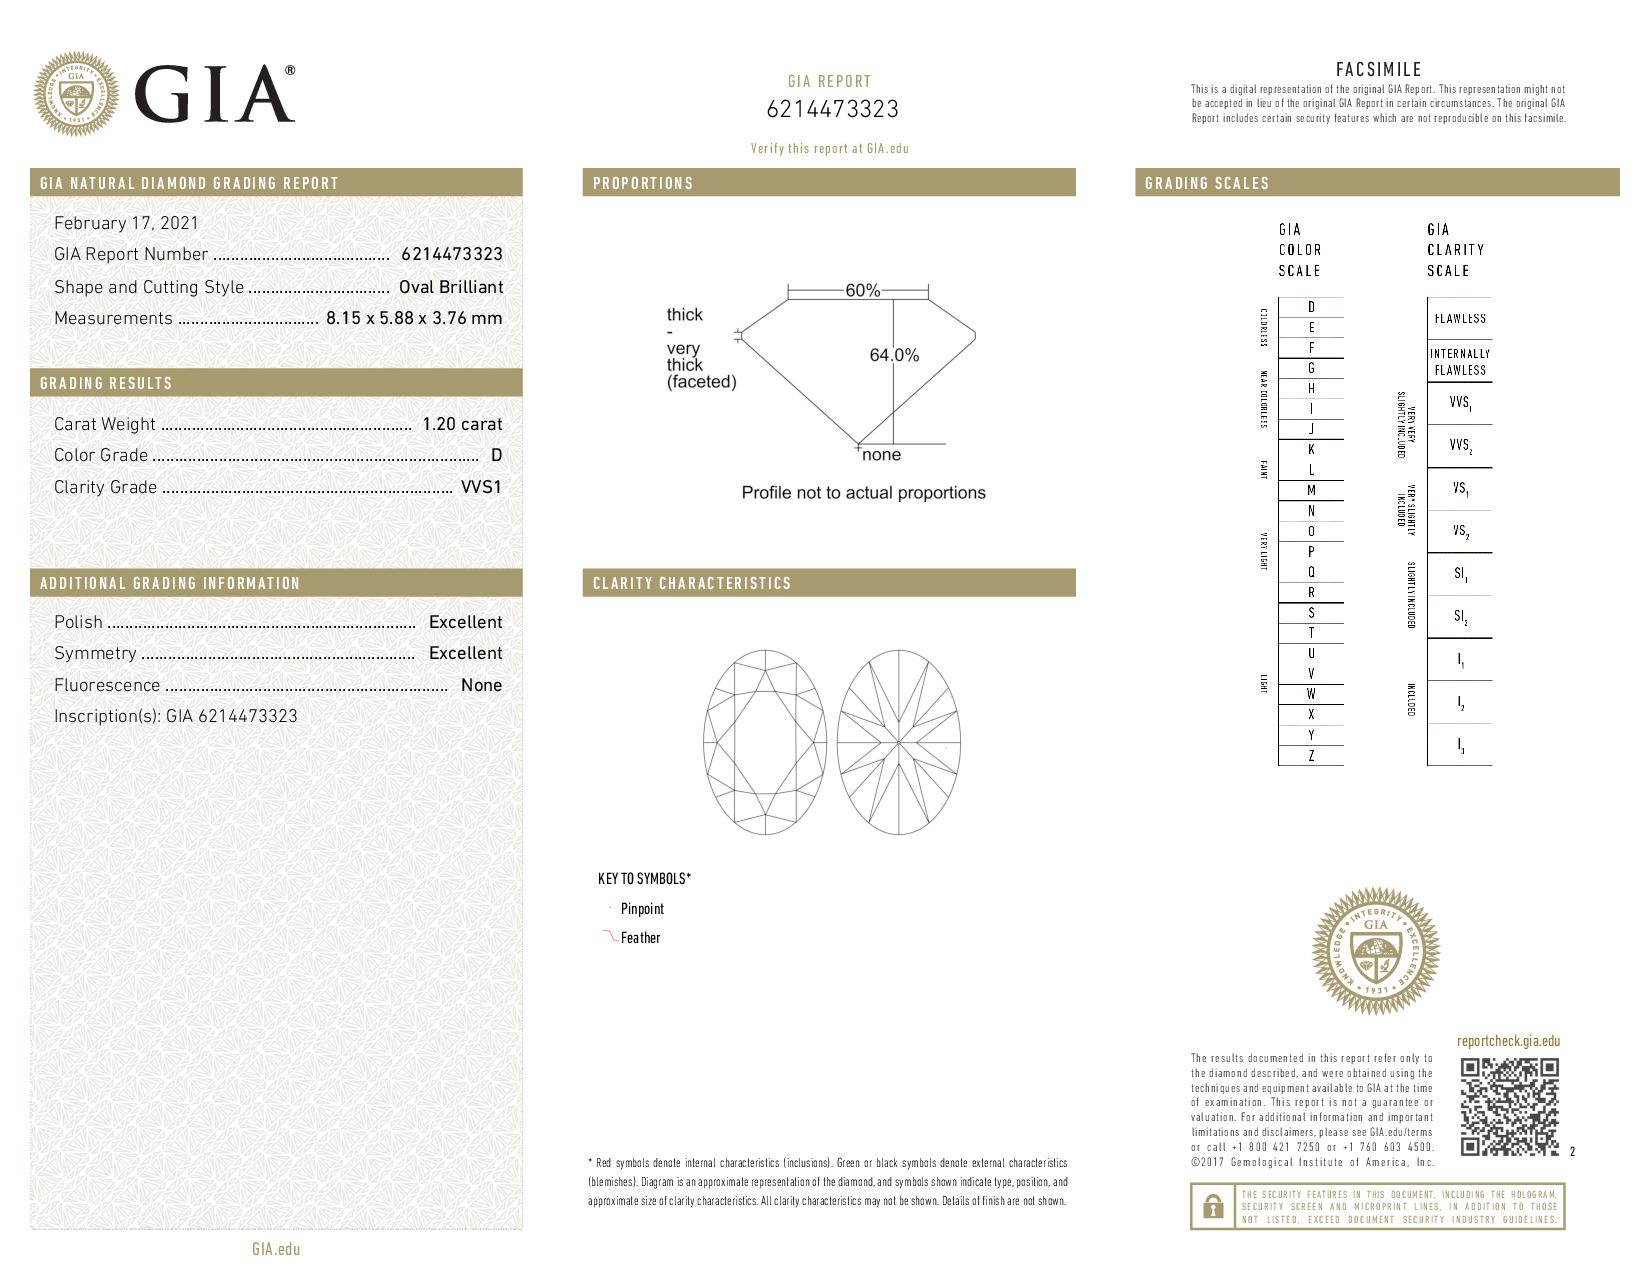 This is a 1.20 carat oval shape, D color, VVS1 clarity natural diamond accompanied by a GIA grading report.